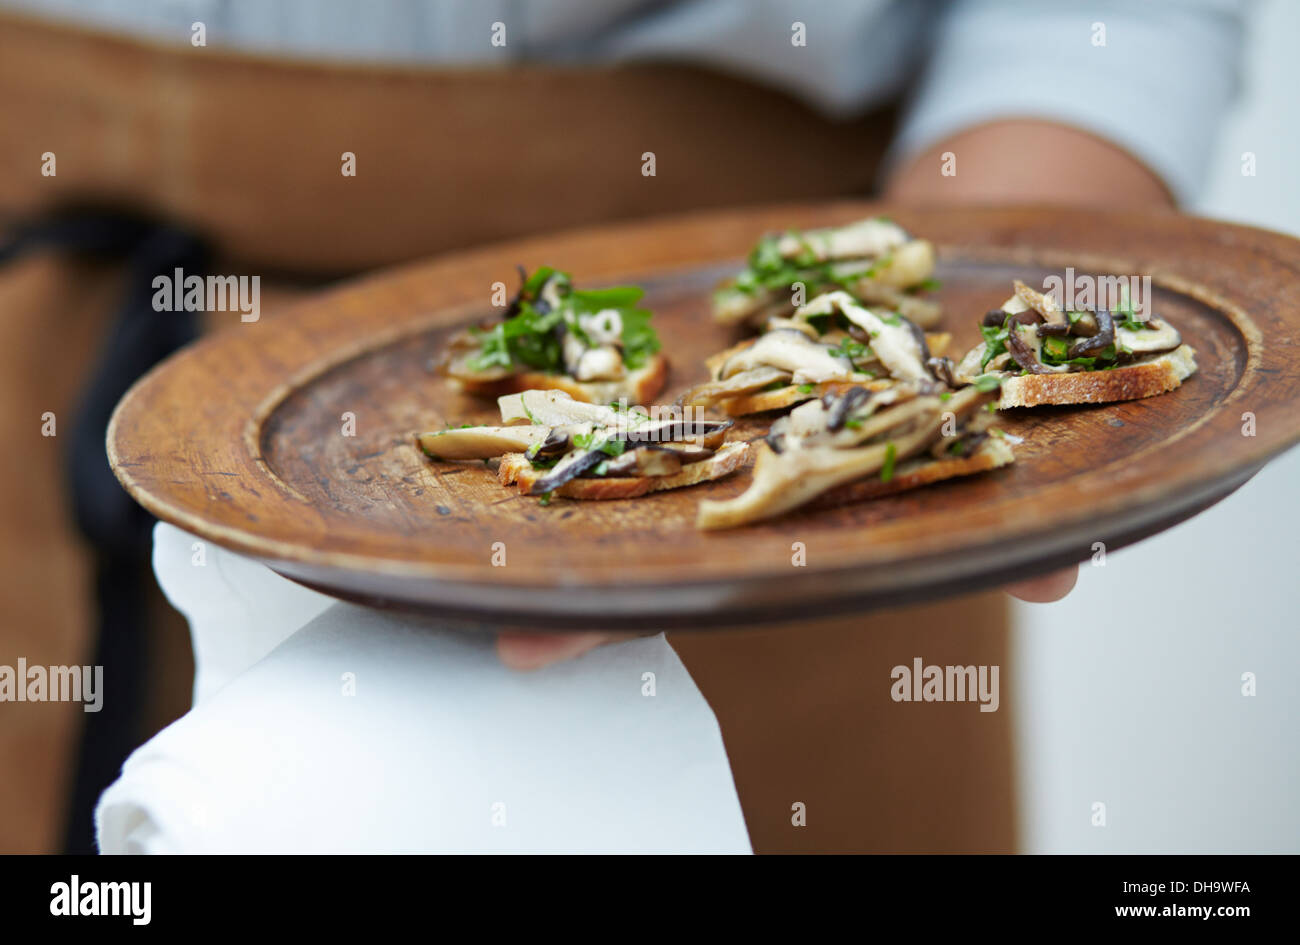 Close-up of a waitress holding a plate of canapés on a wooden platter. - Stock Image